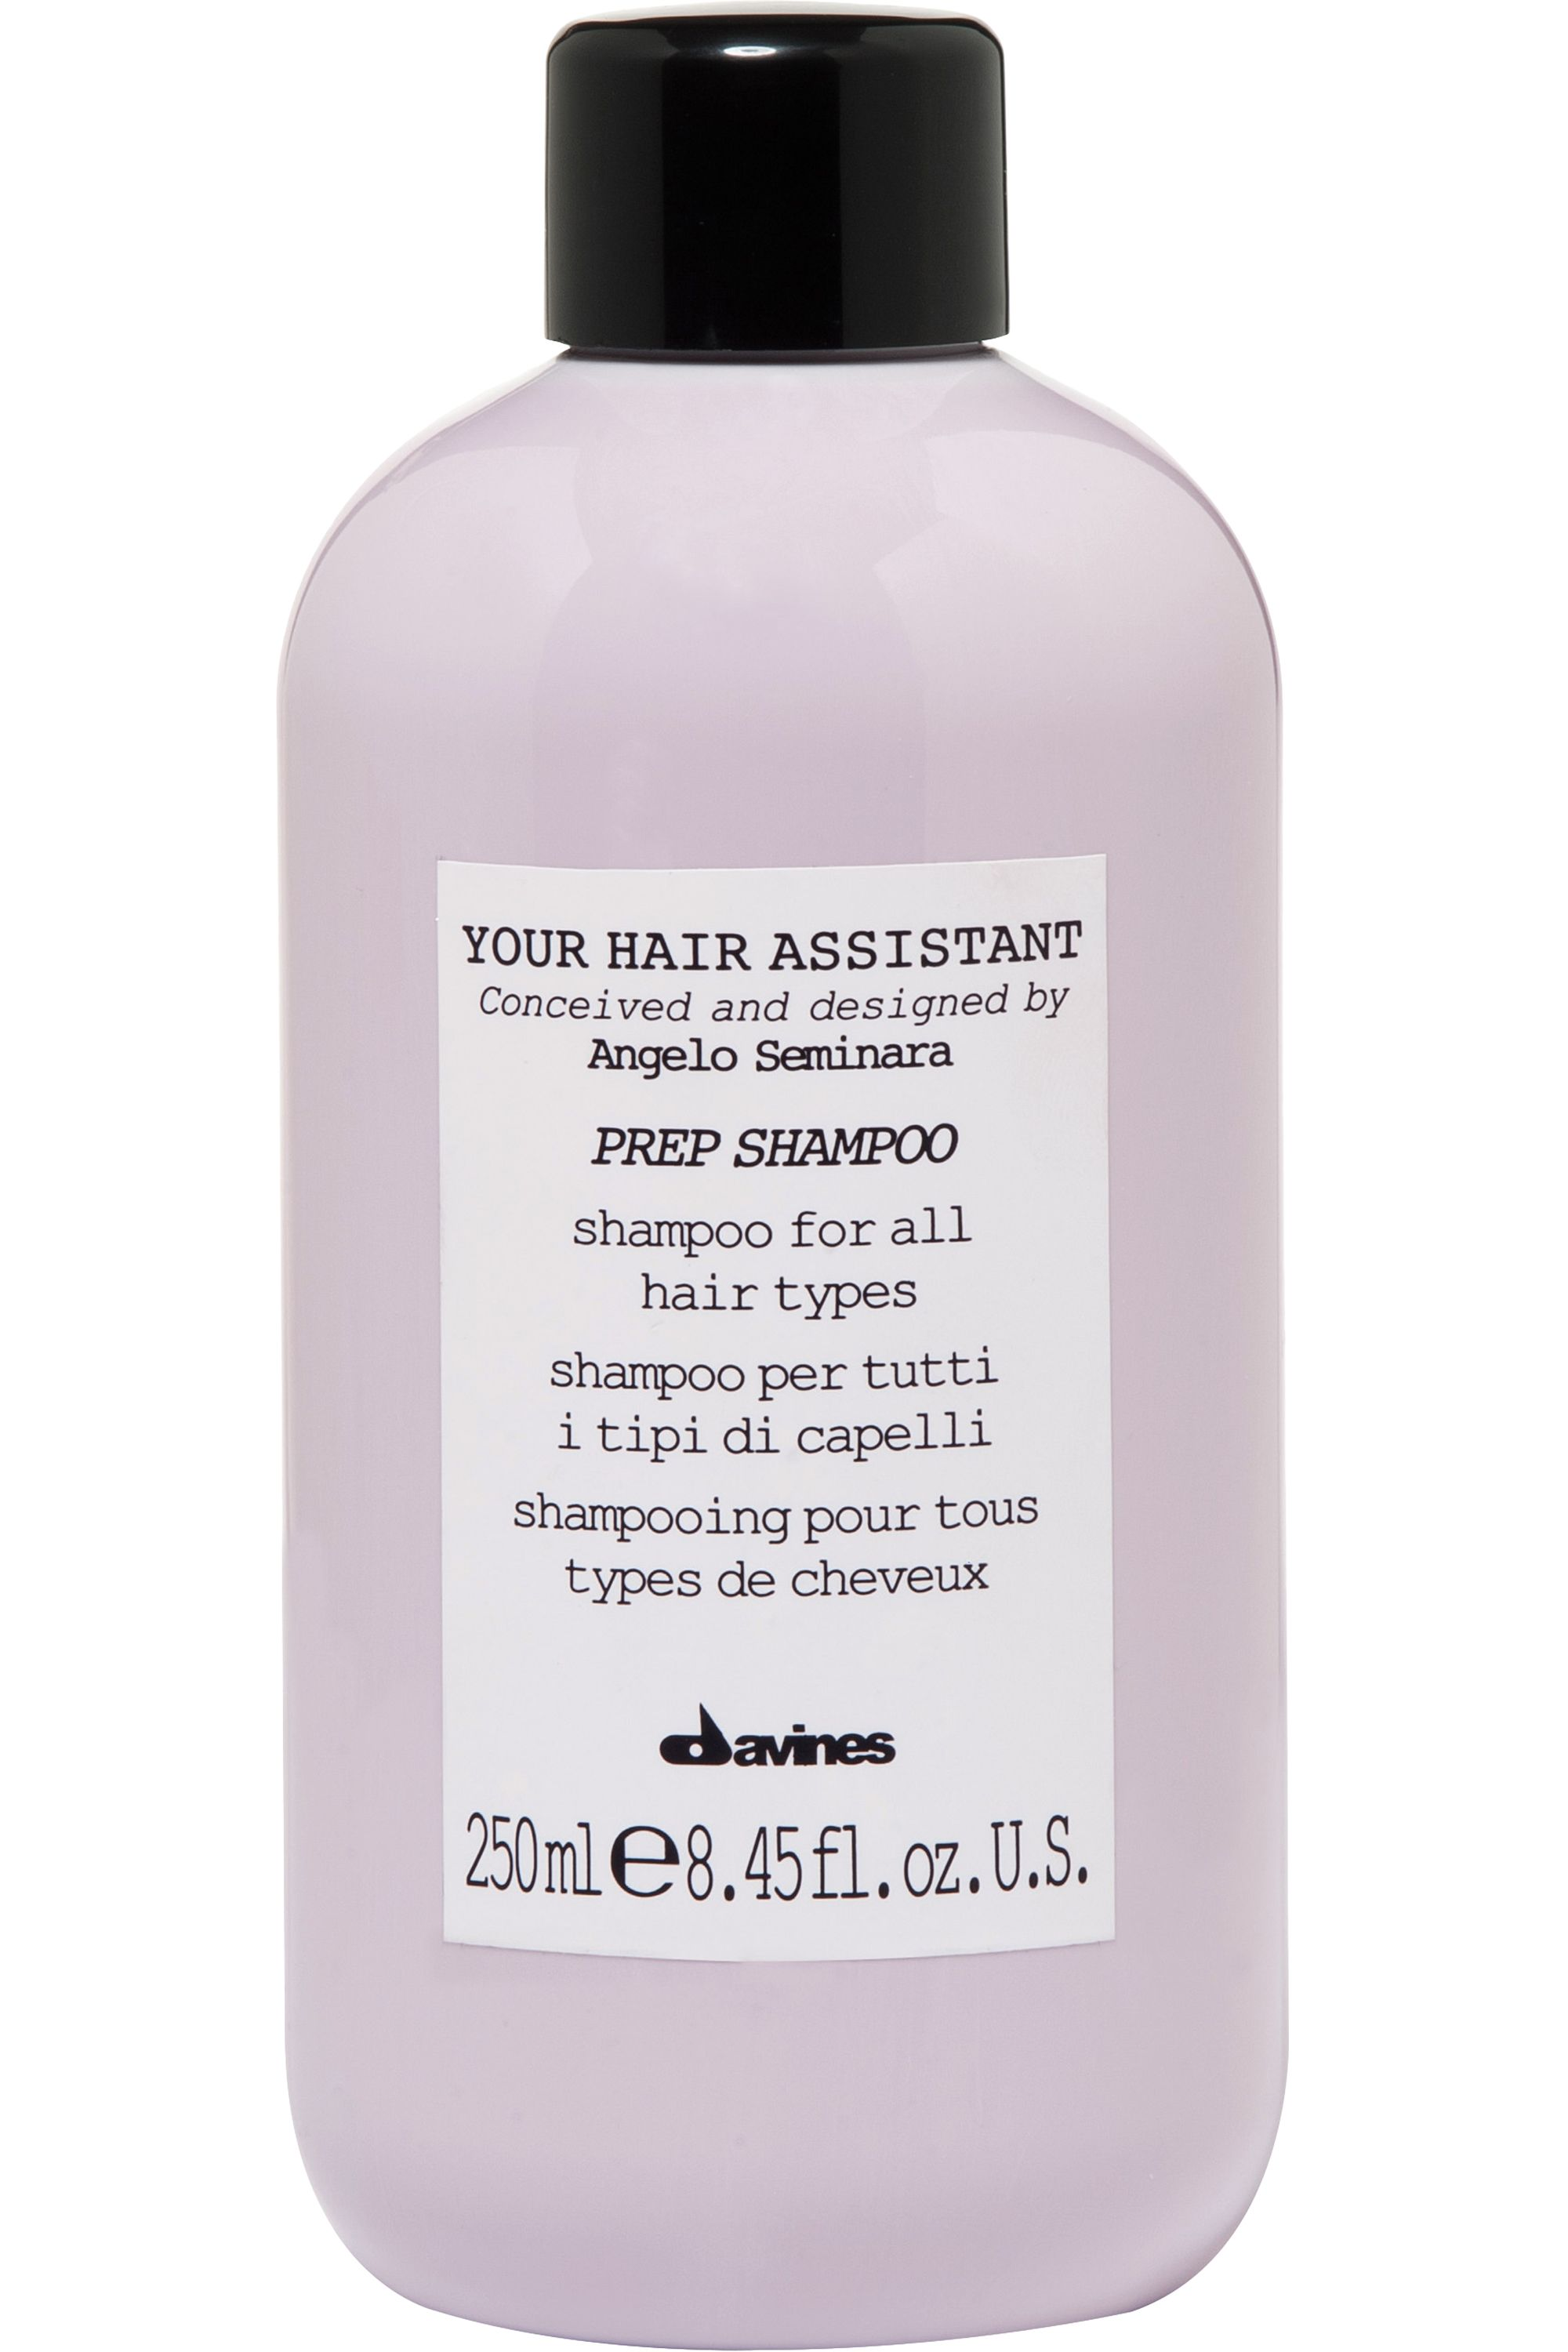 Blissim : Davines - Shampoing quotidien Your Hair Assistant Prep - Shampoing quotidien Your Hair Assistant Prep